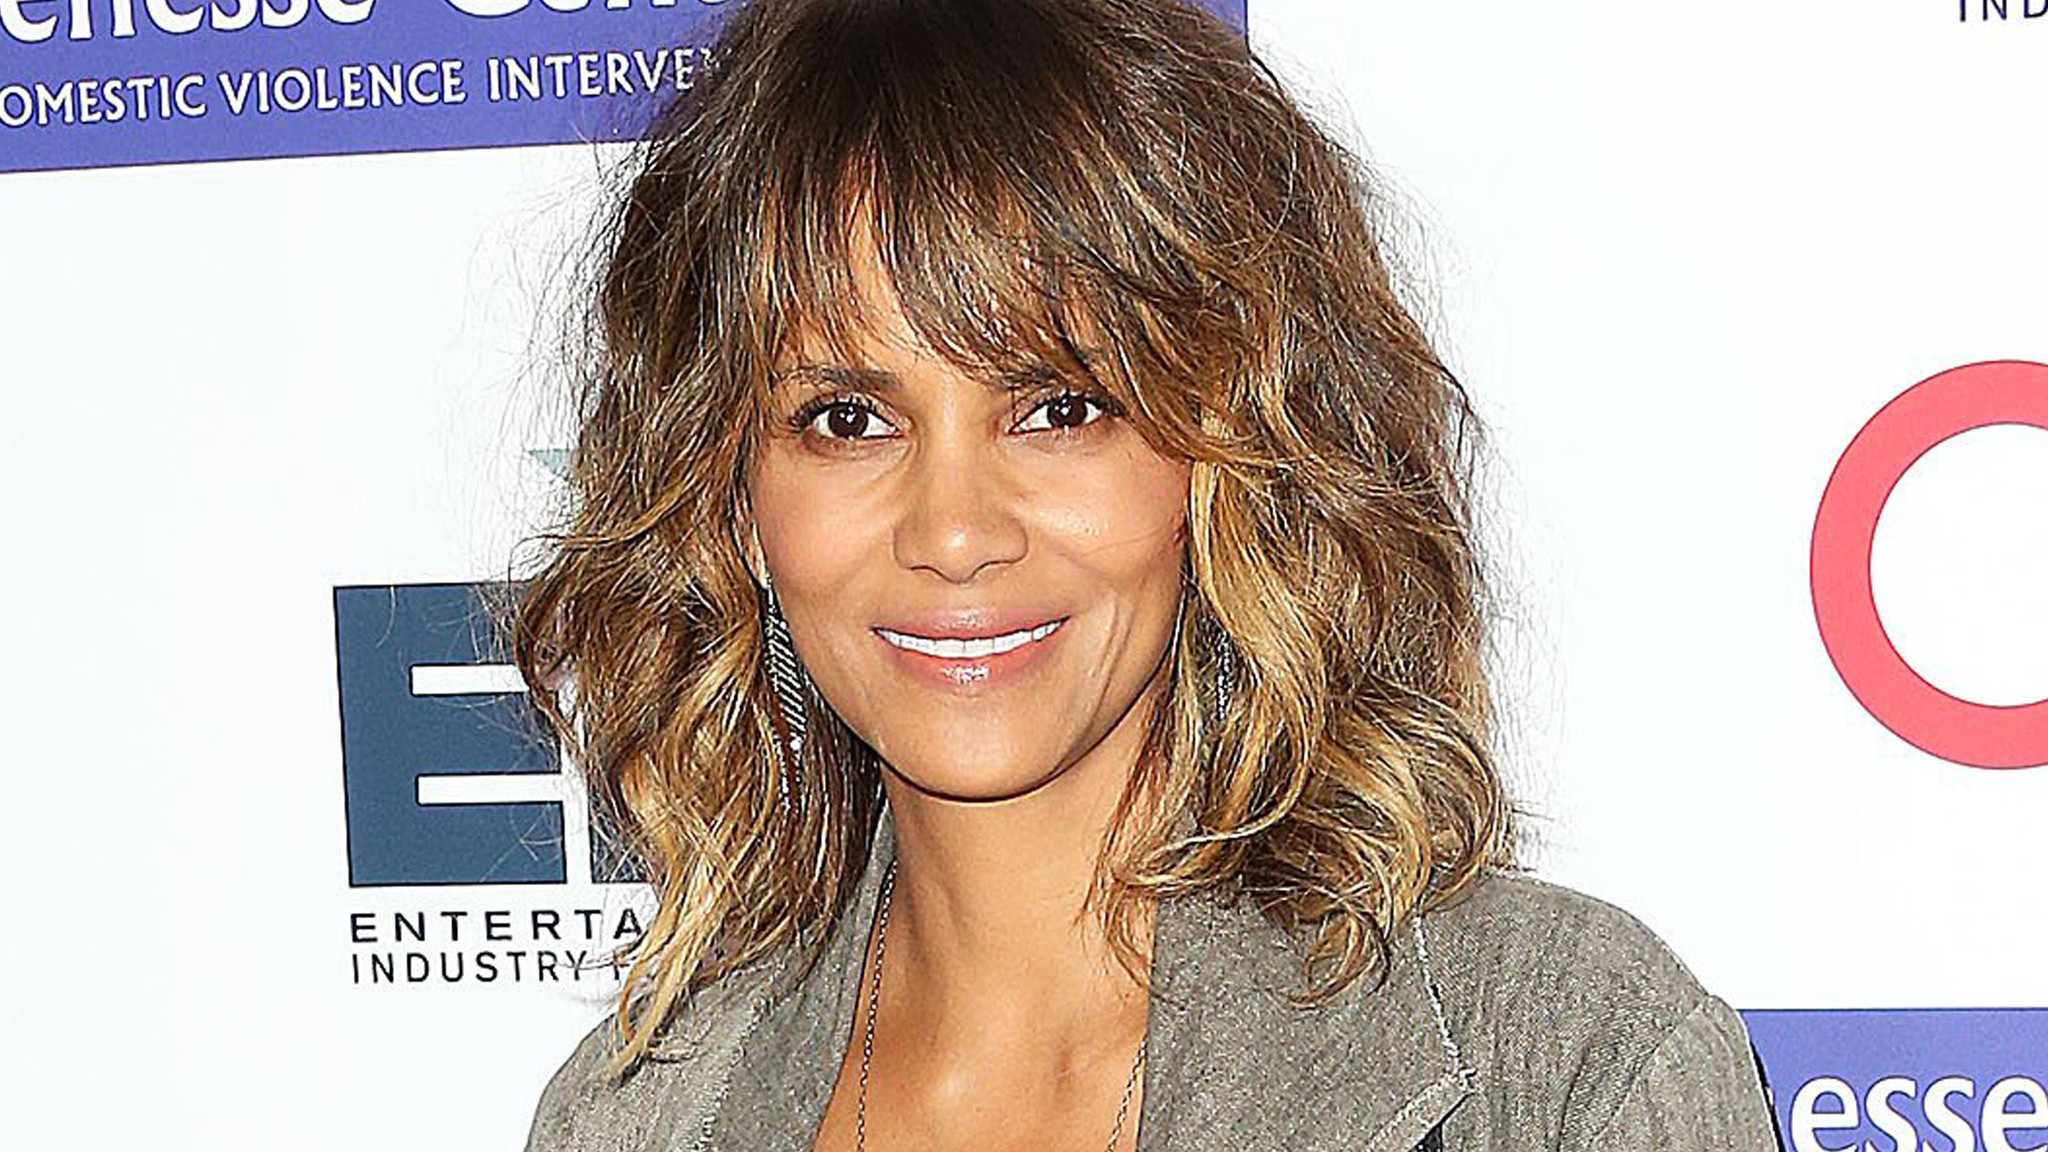 Halle Berry makes the rounds: 'I keep pushing,' she says - LA Times